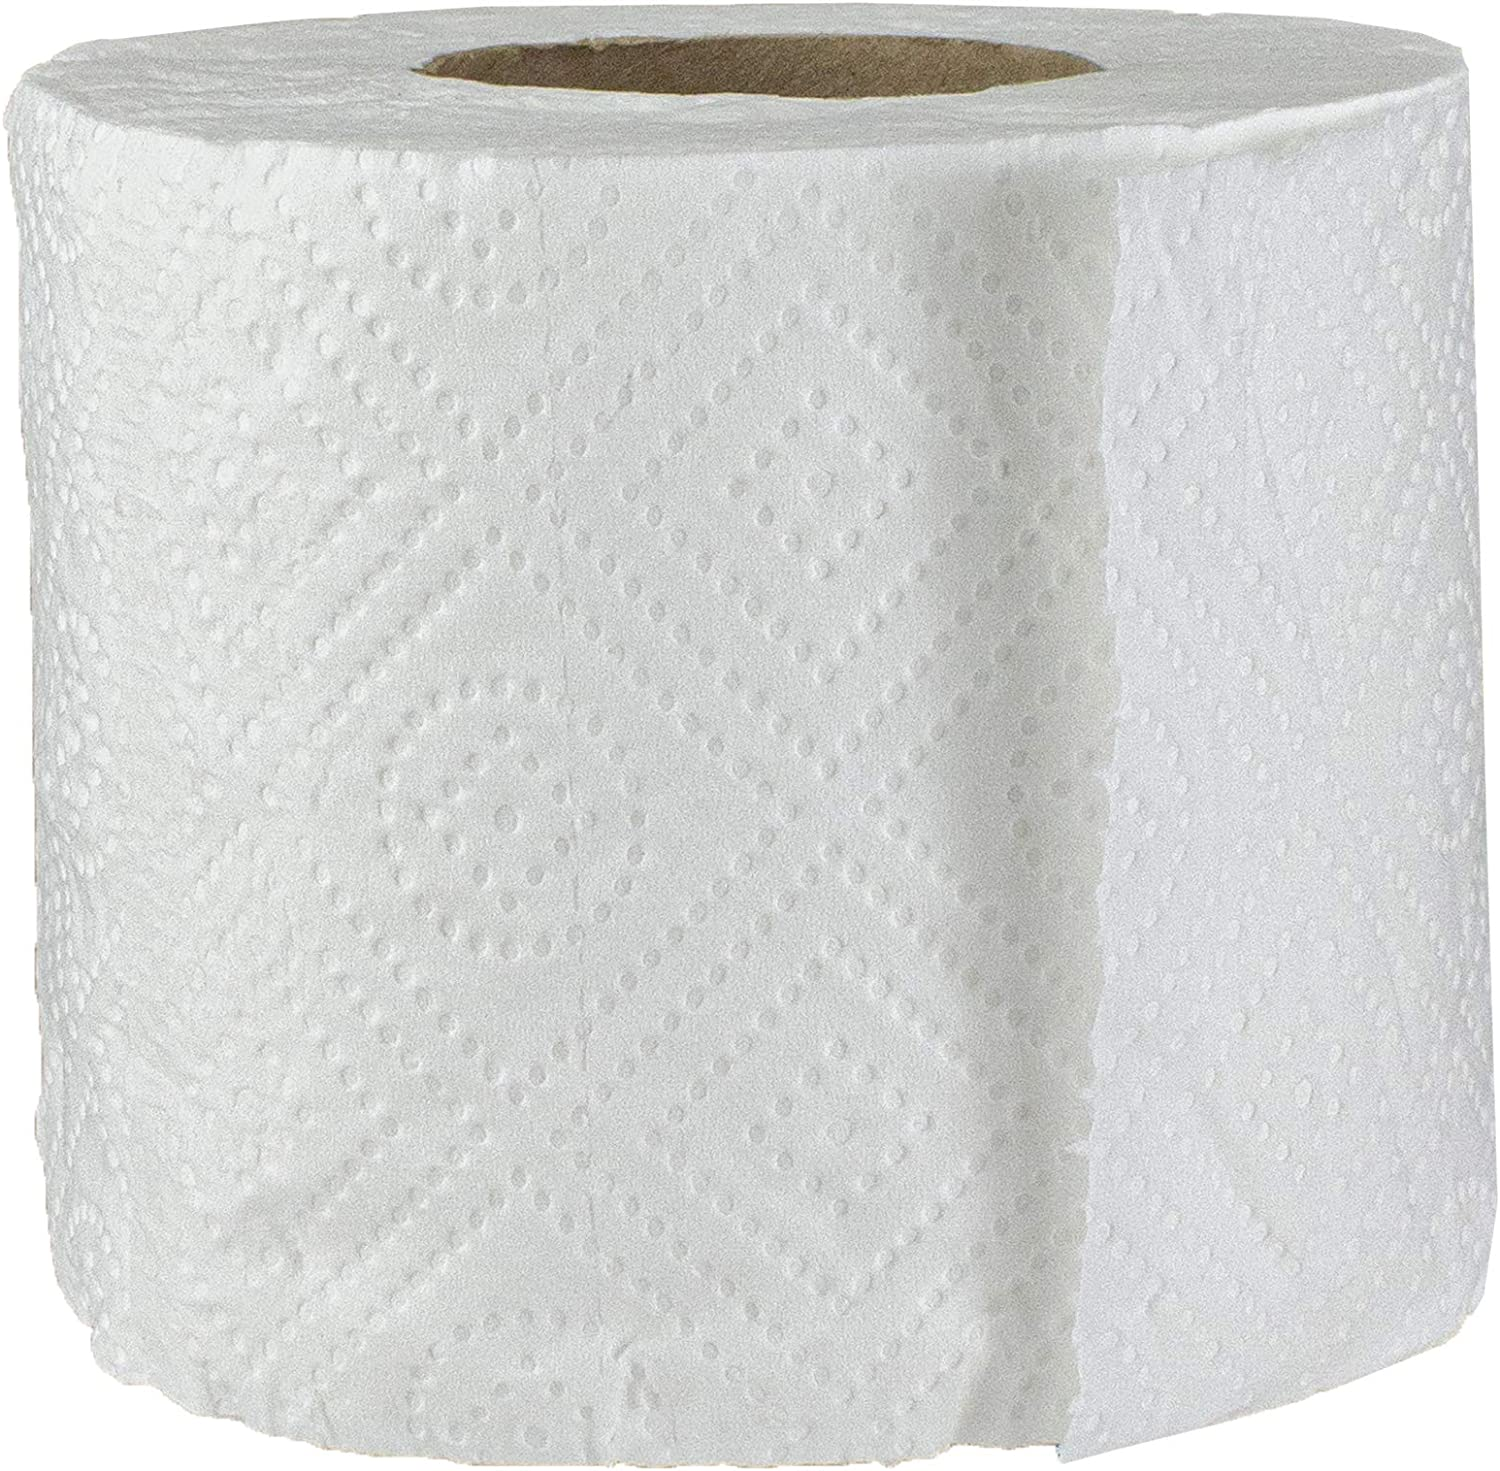 Pack of 80 Mail order cheap Sale SALE% OFF Plush Paper Rolls 2-Ply Toilet